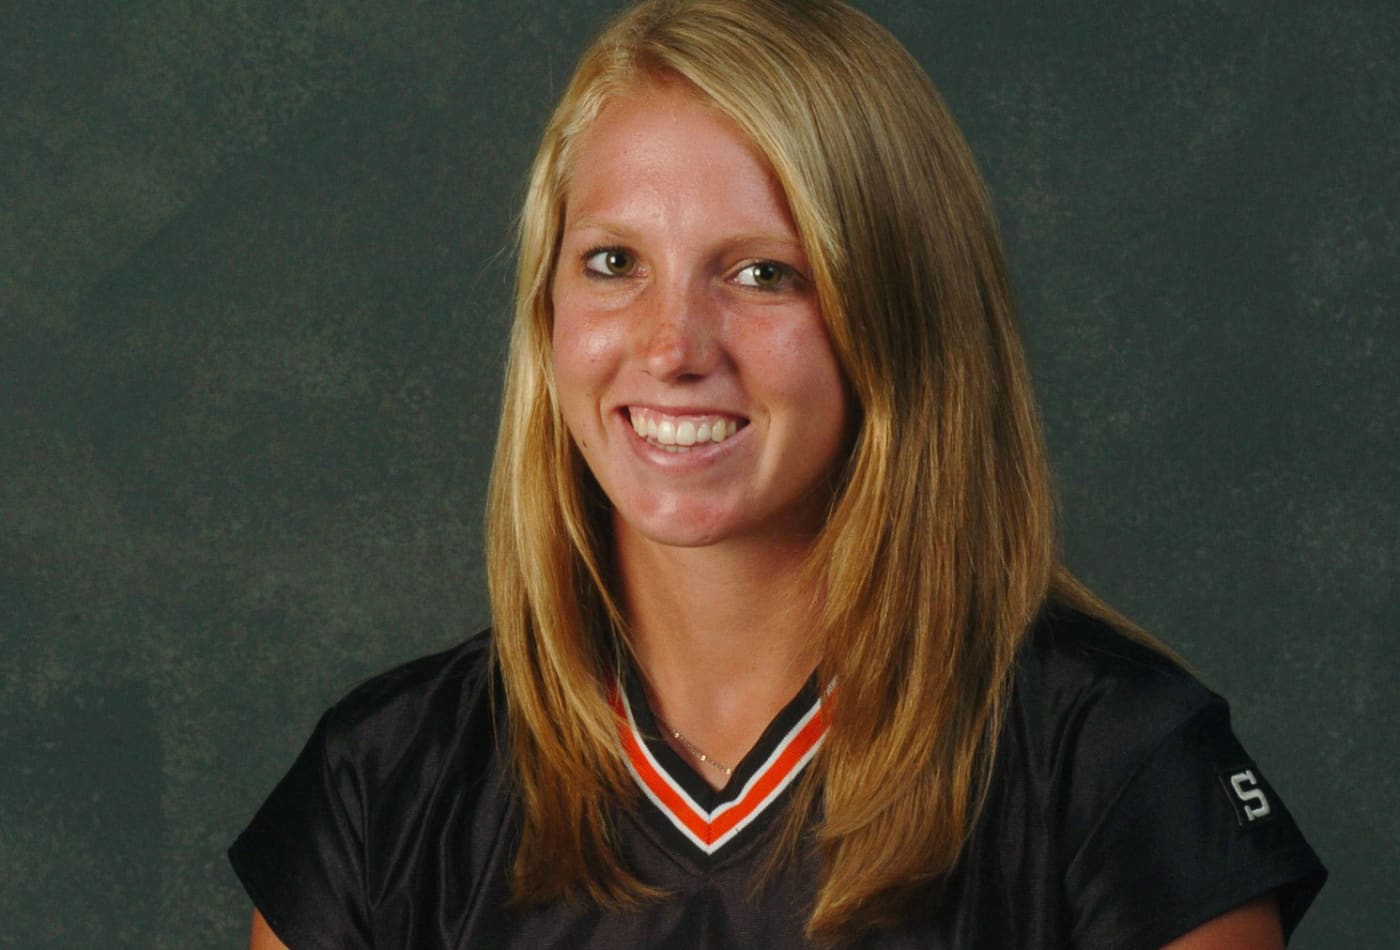 The Giants just hired Alyssa Nakken—as the first full-time female coach in MLB history